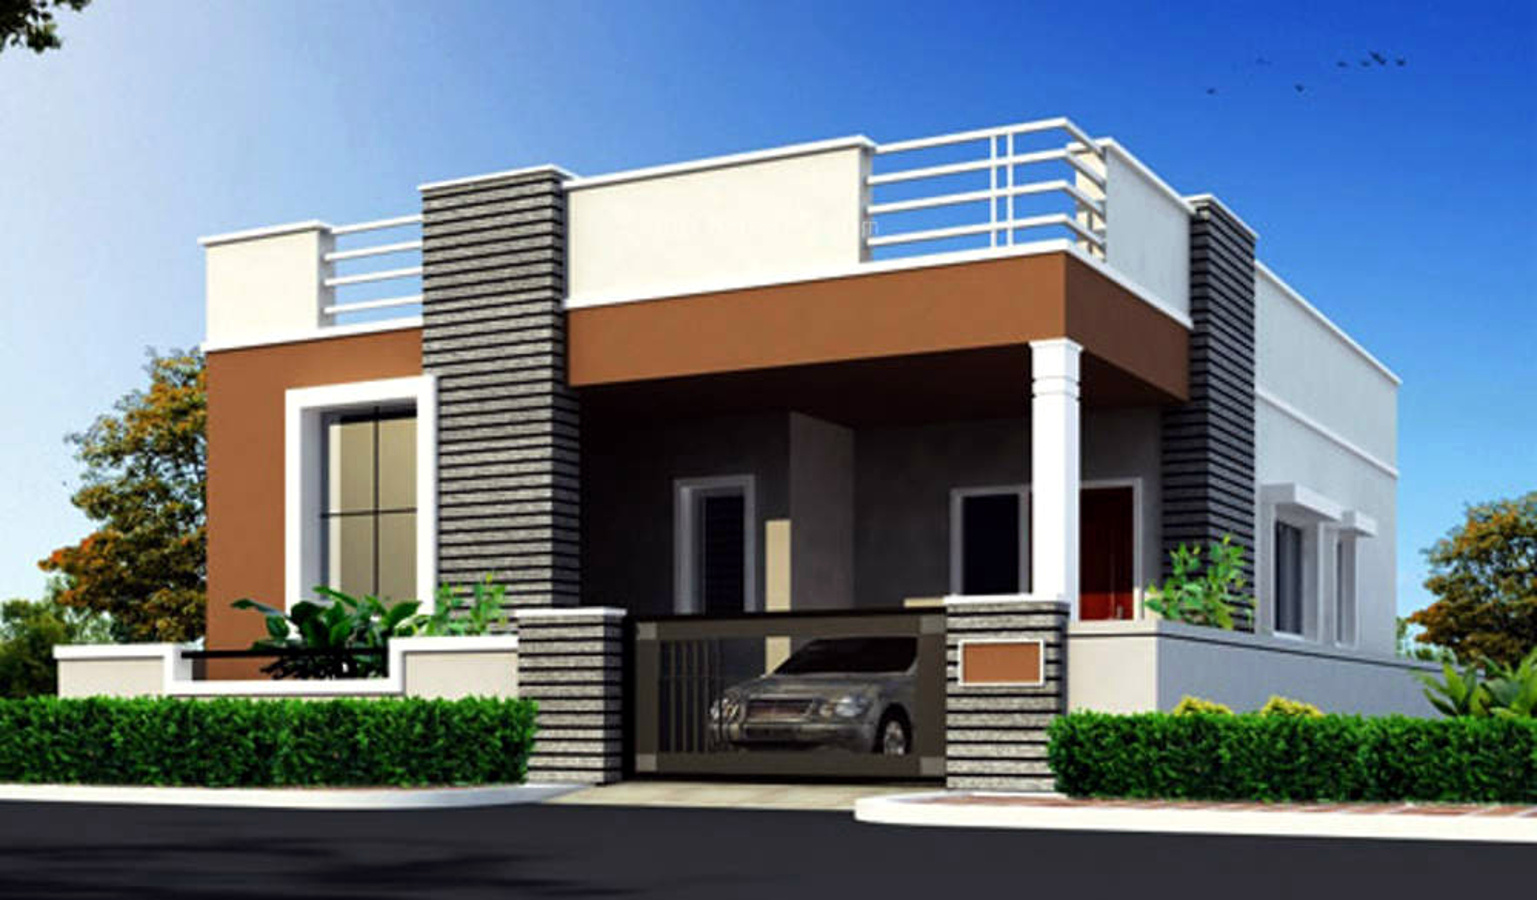 2 Storey Modern House Floor Plan Villa Elevation Www Pixshark Com Images Galleries With